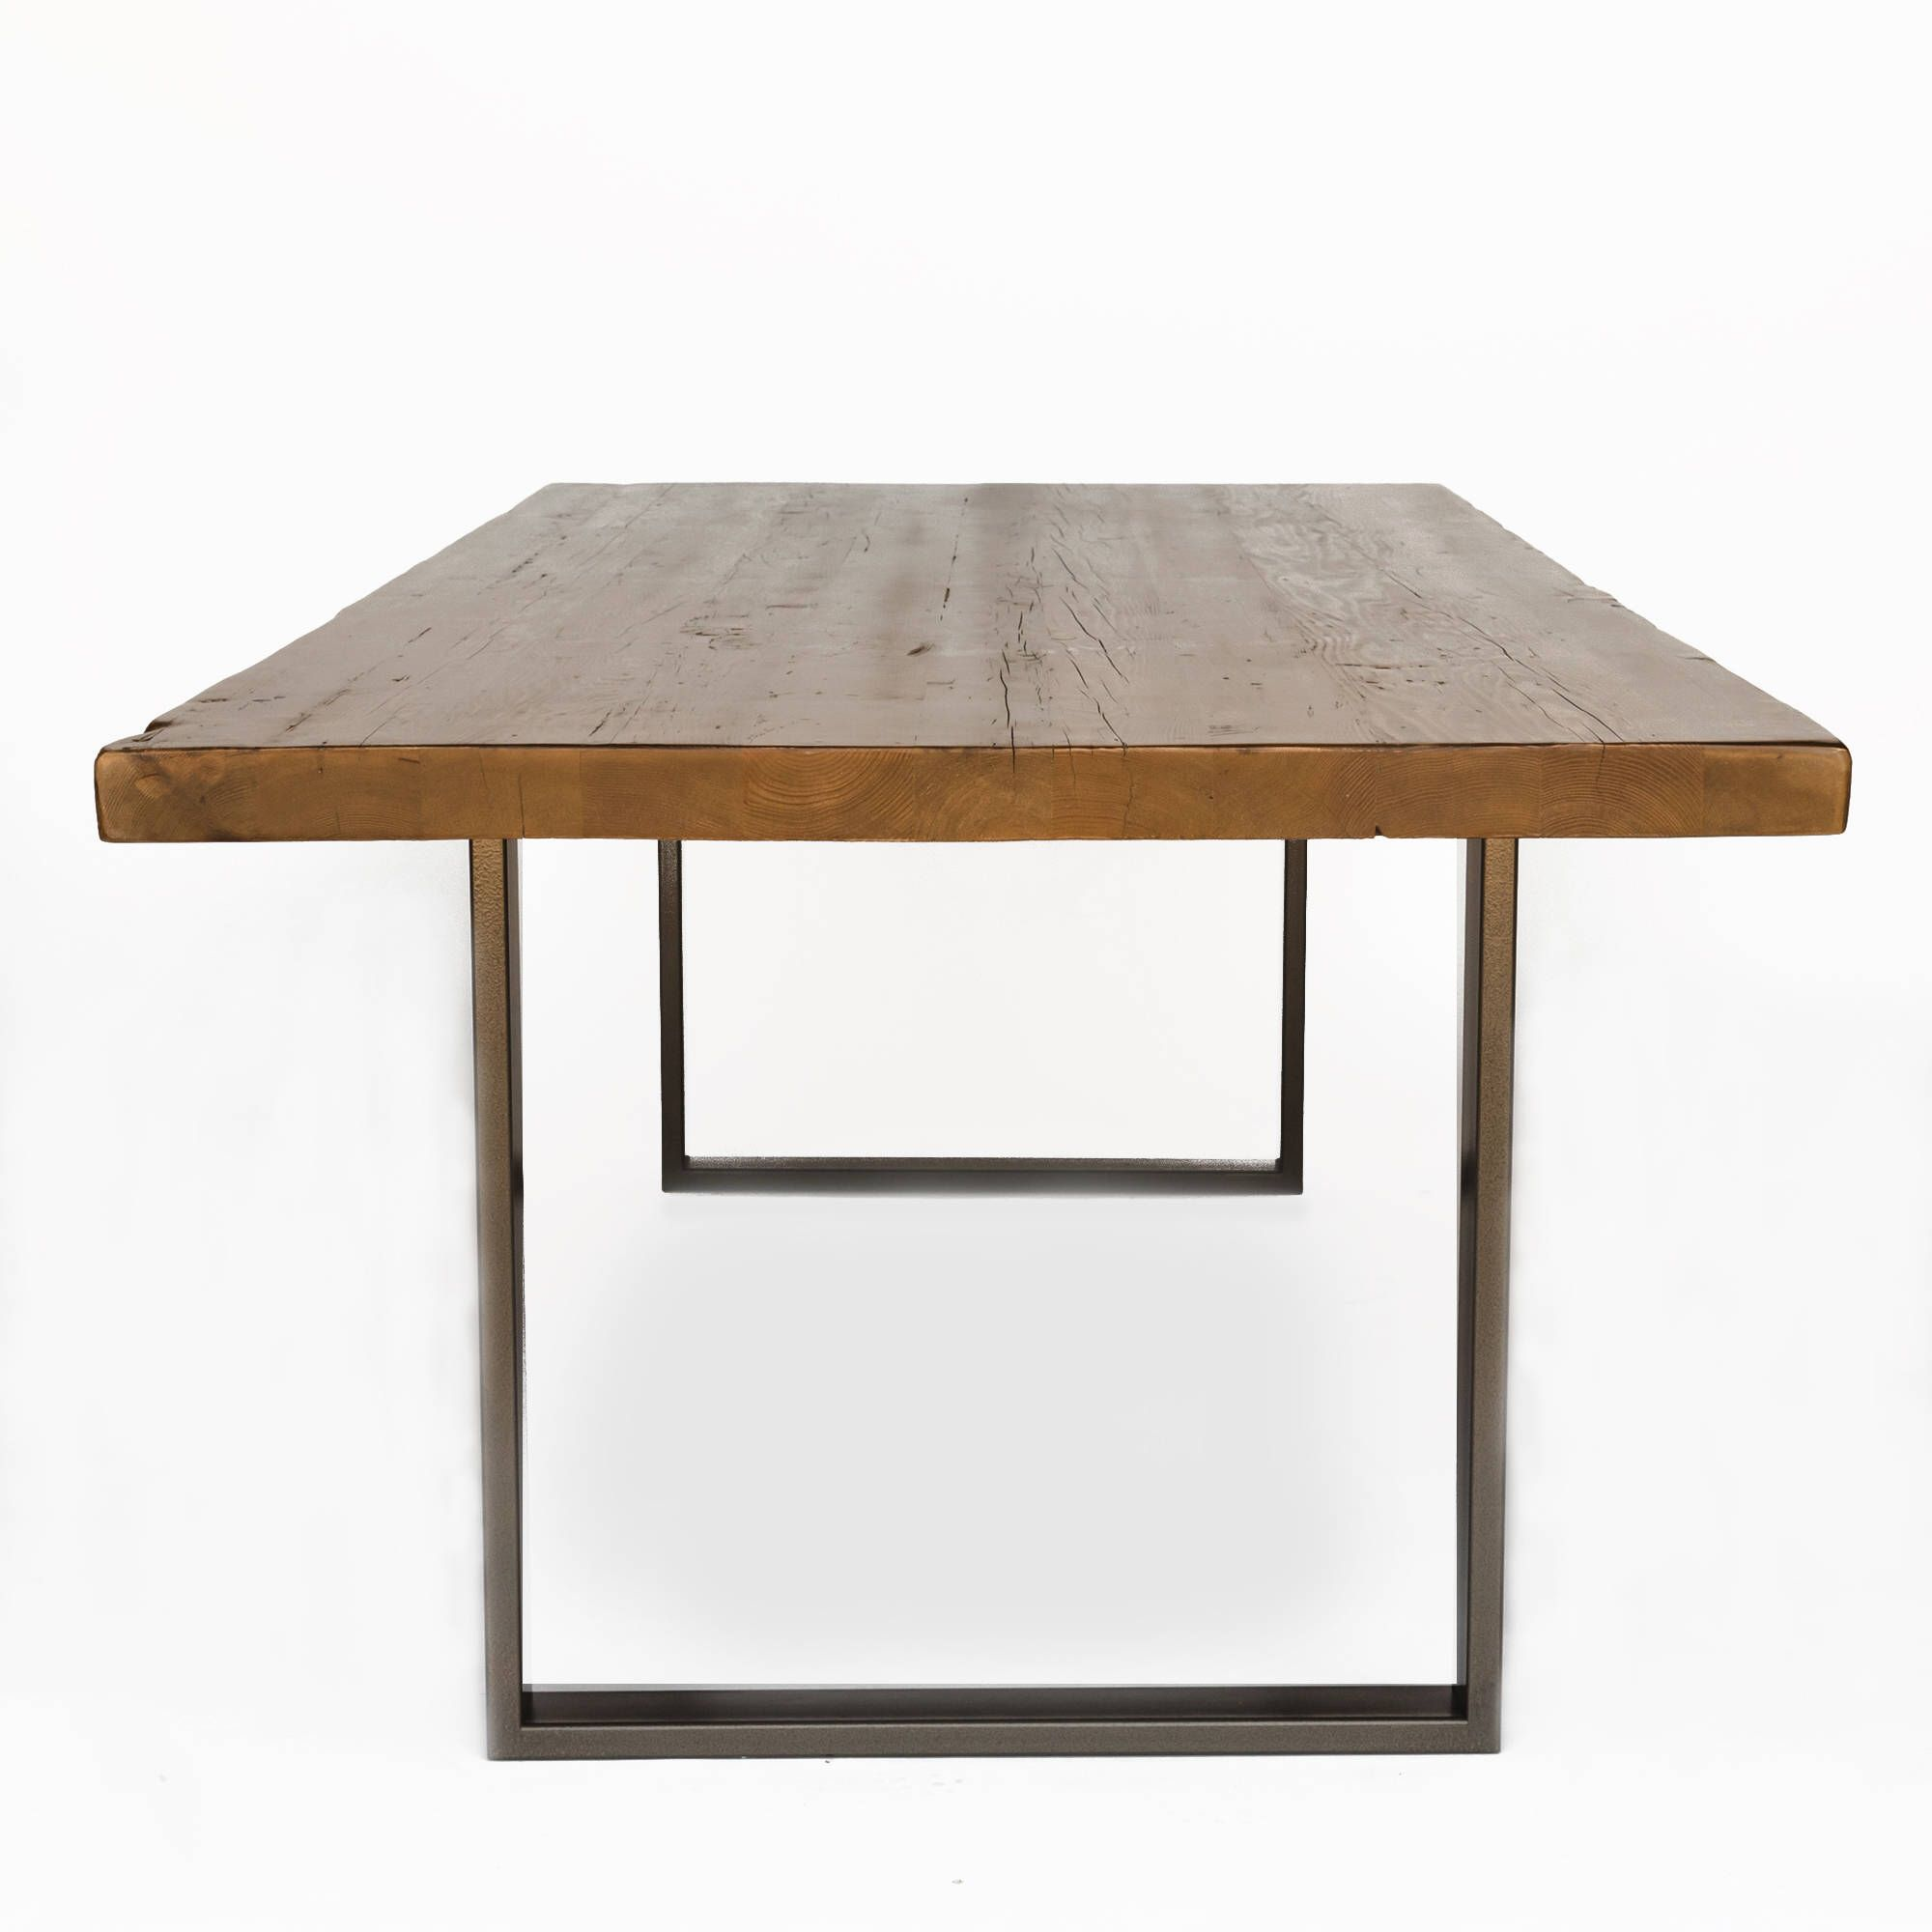 Modern Rustic Dining Table Reclaimed Wood Dining Table Wood Dining Tables Choice Of Size Heig Reclaimed Wood Dining Table Modern Rustic Dining Table Dining Table